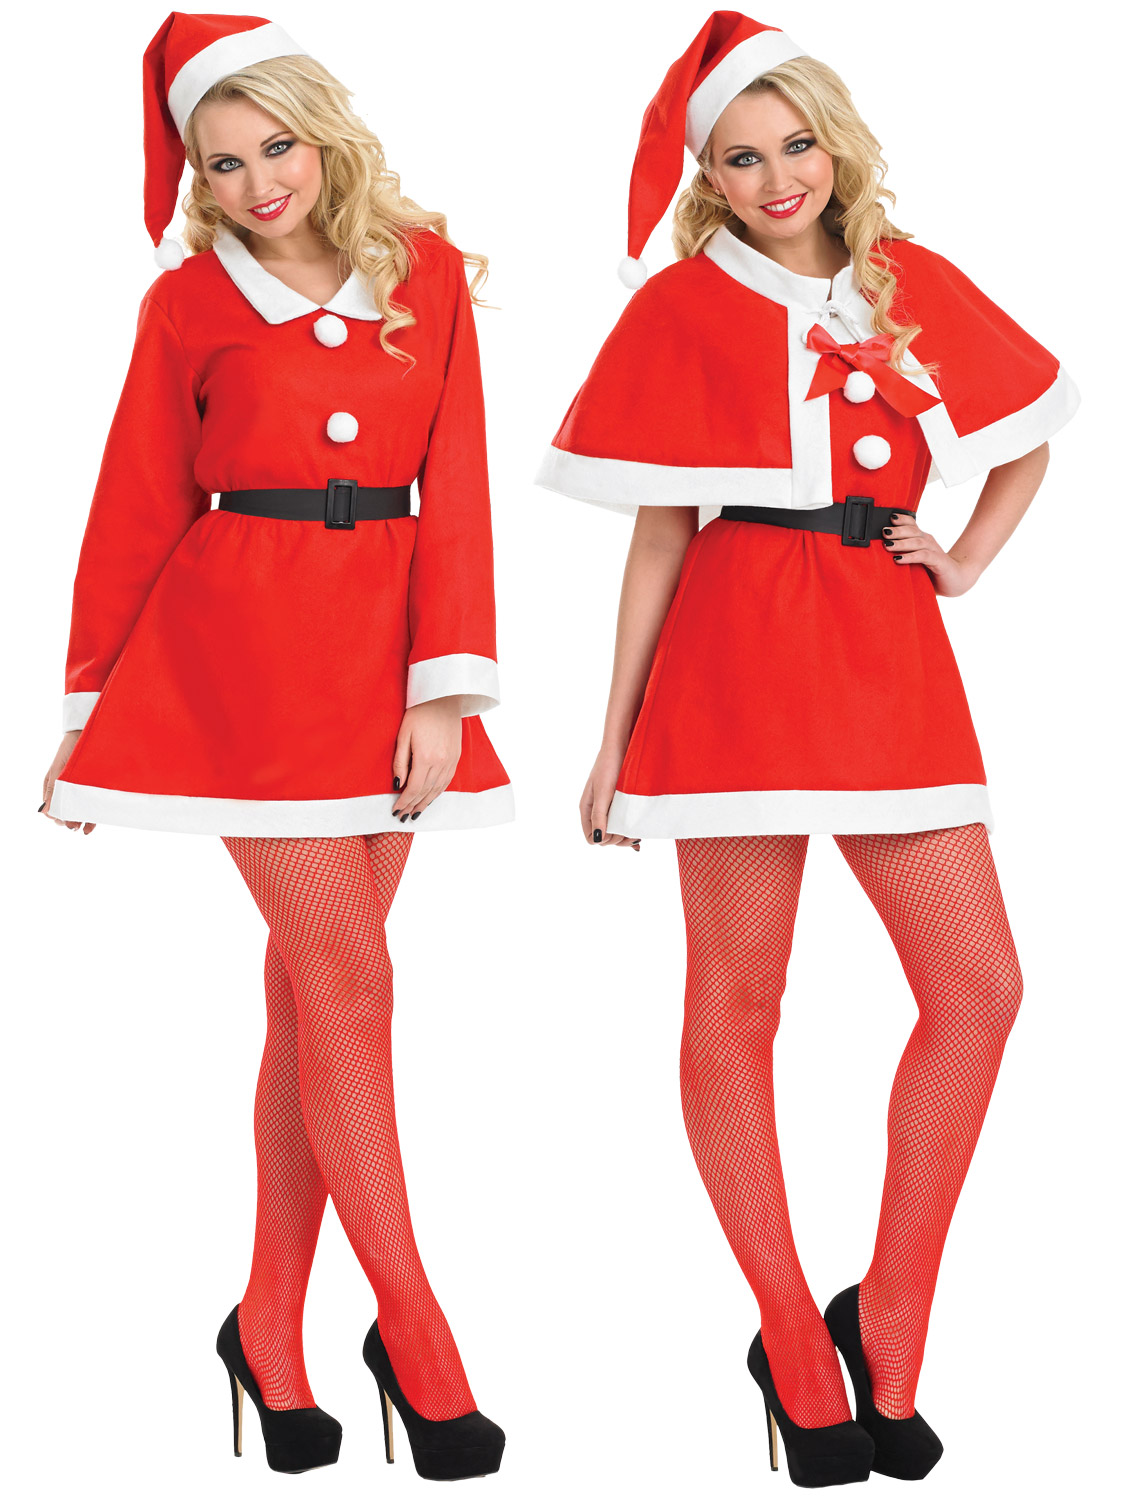 Ladies miss santa costume womens father christmas outfit xmas fancy transform yourself into a sexy mrs claus perfect for any dress up christmas party event or a night out on christmas eve solutioingenieria